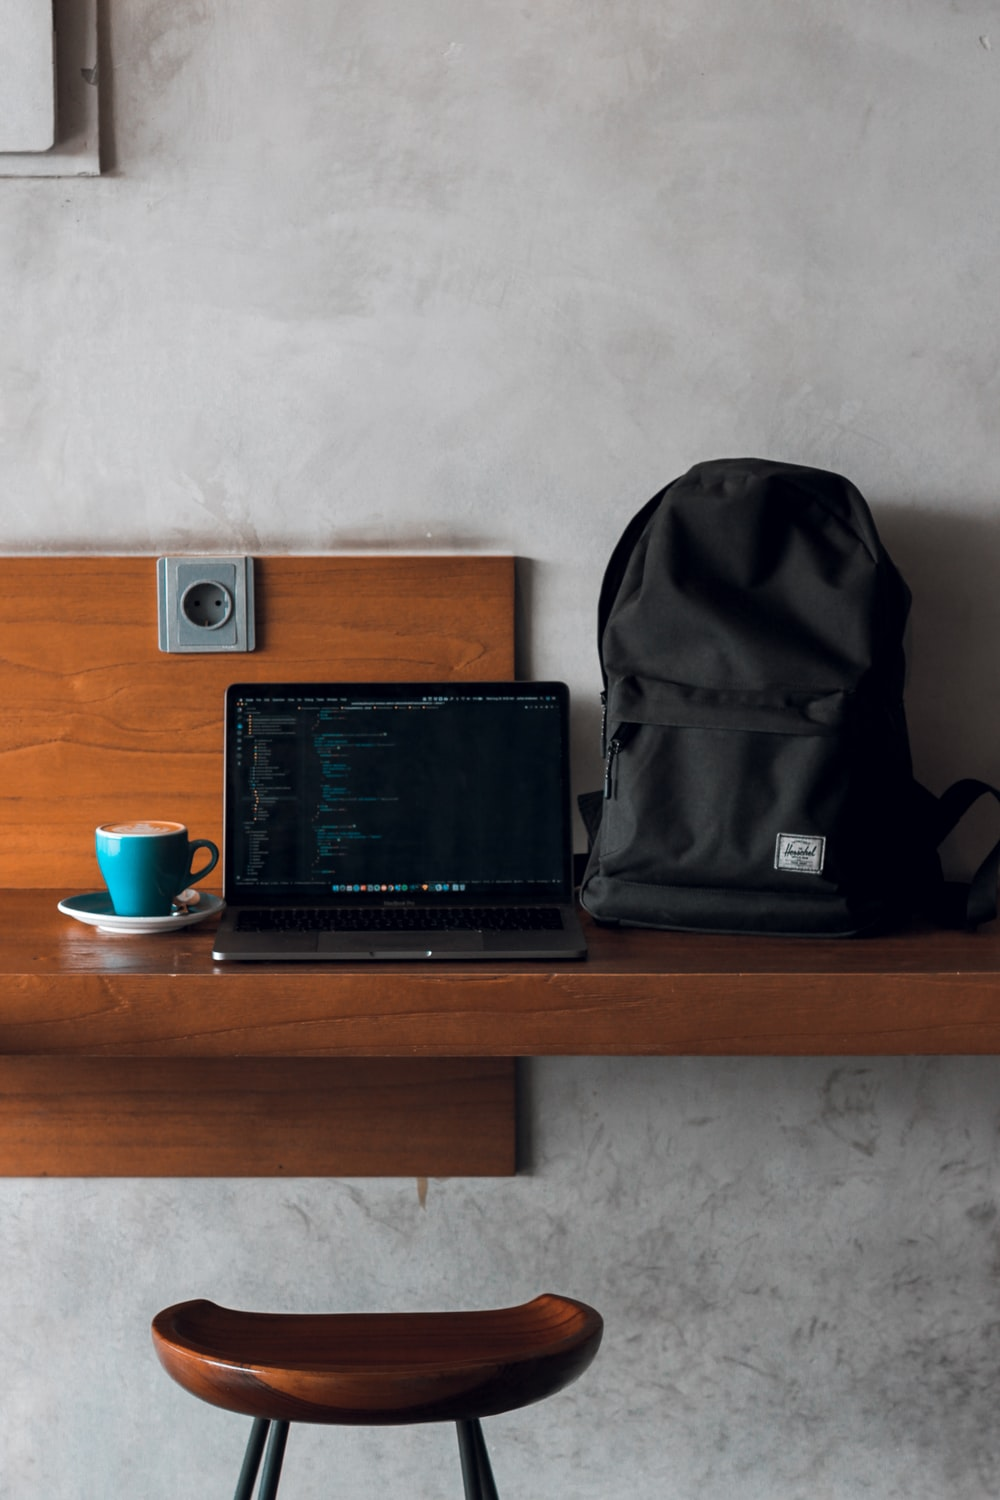 laptop computer beside backpack and coffee mug